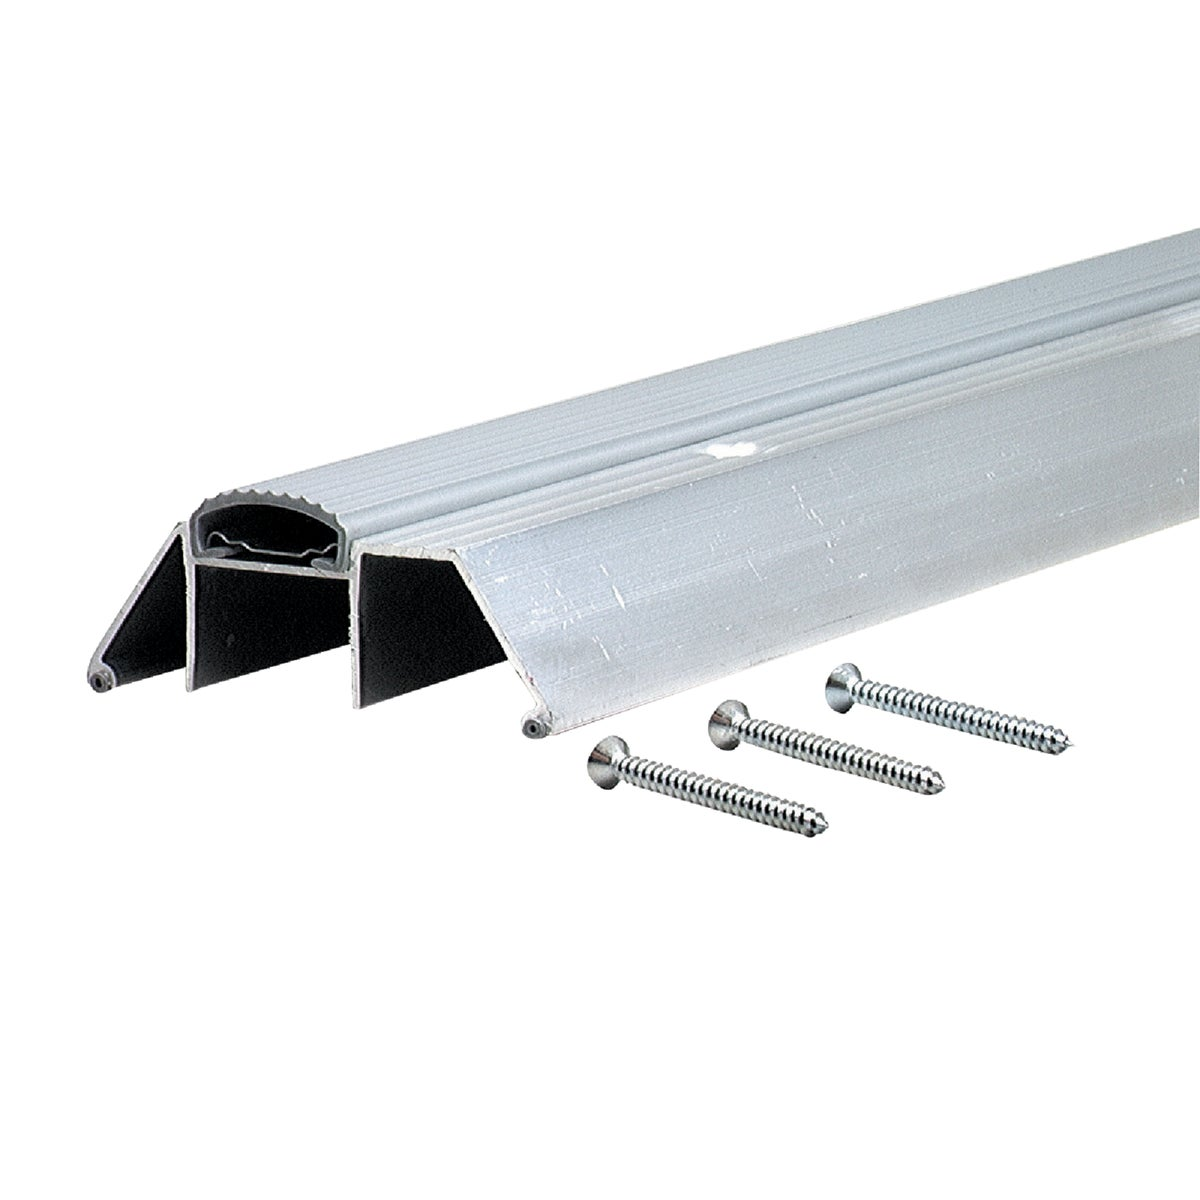 "36"" ALUM AP150 THRESHOLD"